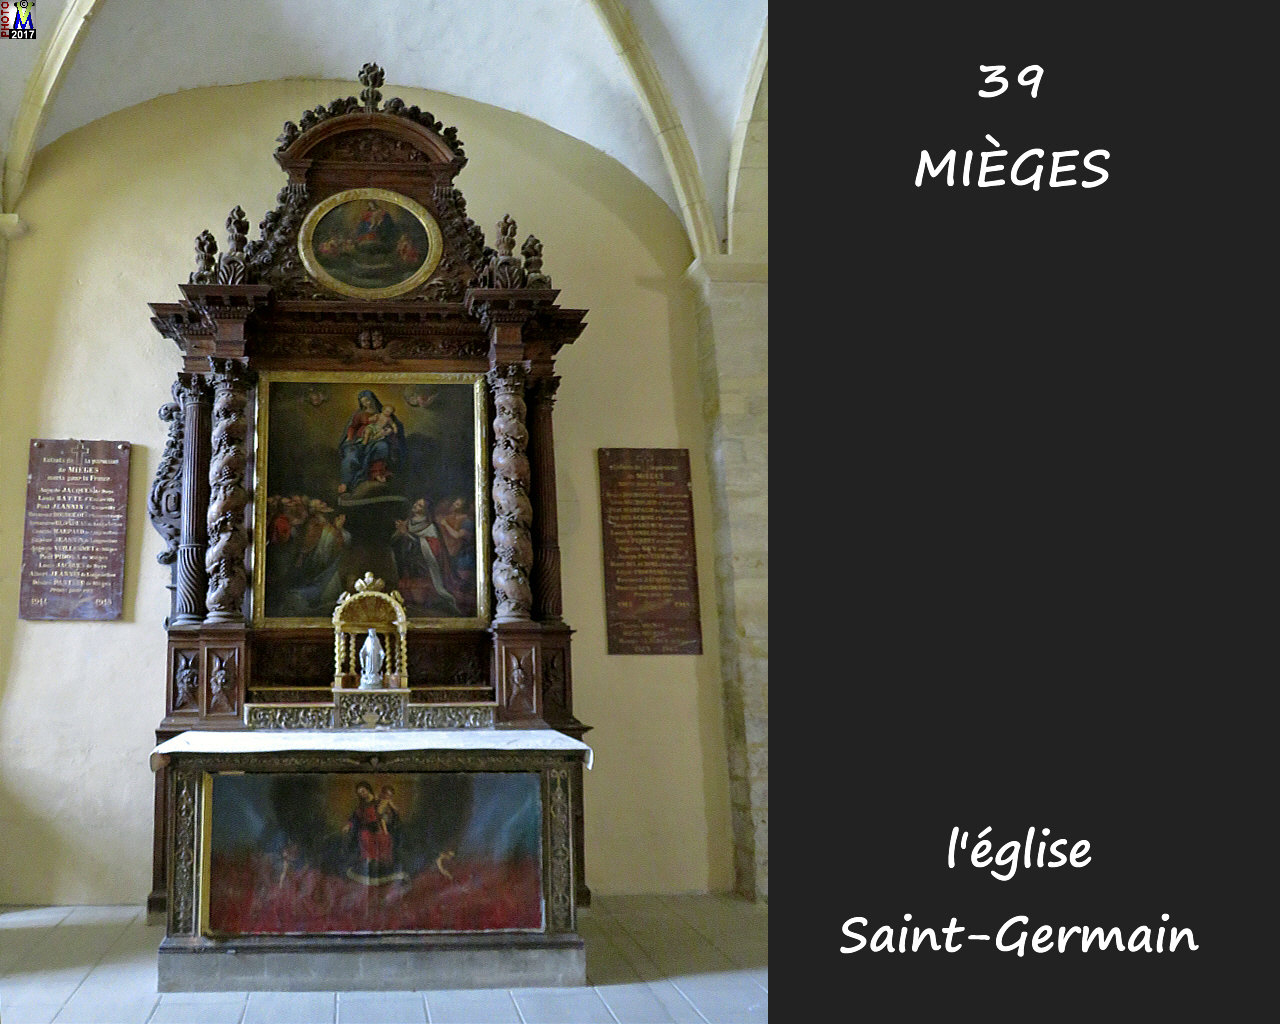 39MIEGES_eglise_226.jpg